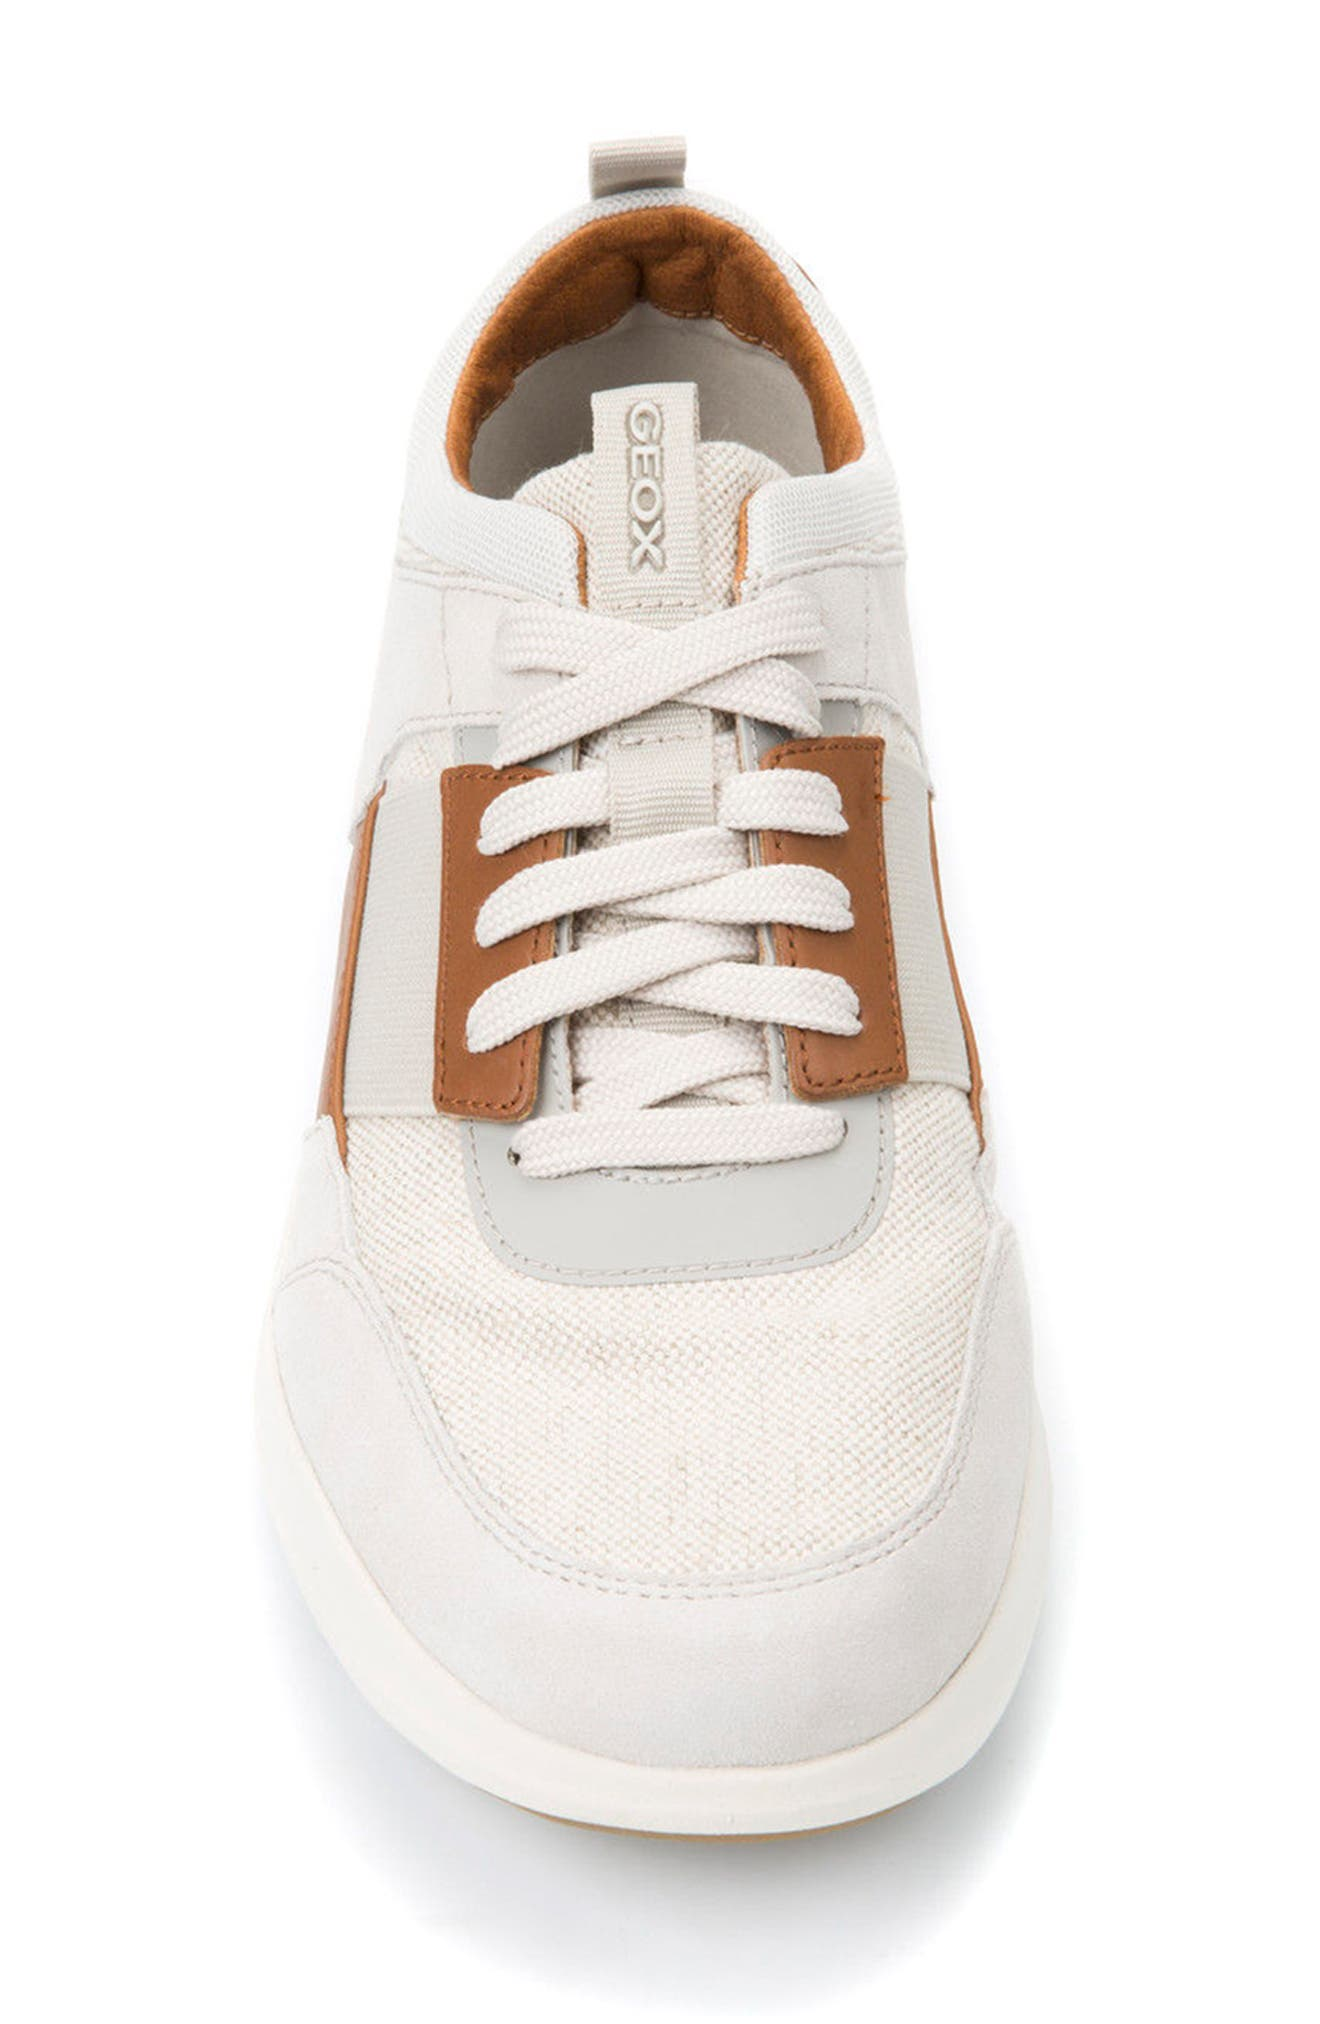 Traccia 7 Sneaker,                             Alternate thumbnail 4, color,                             PAPYRUS